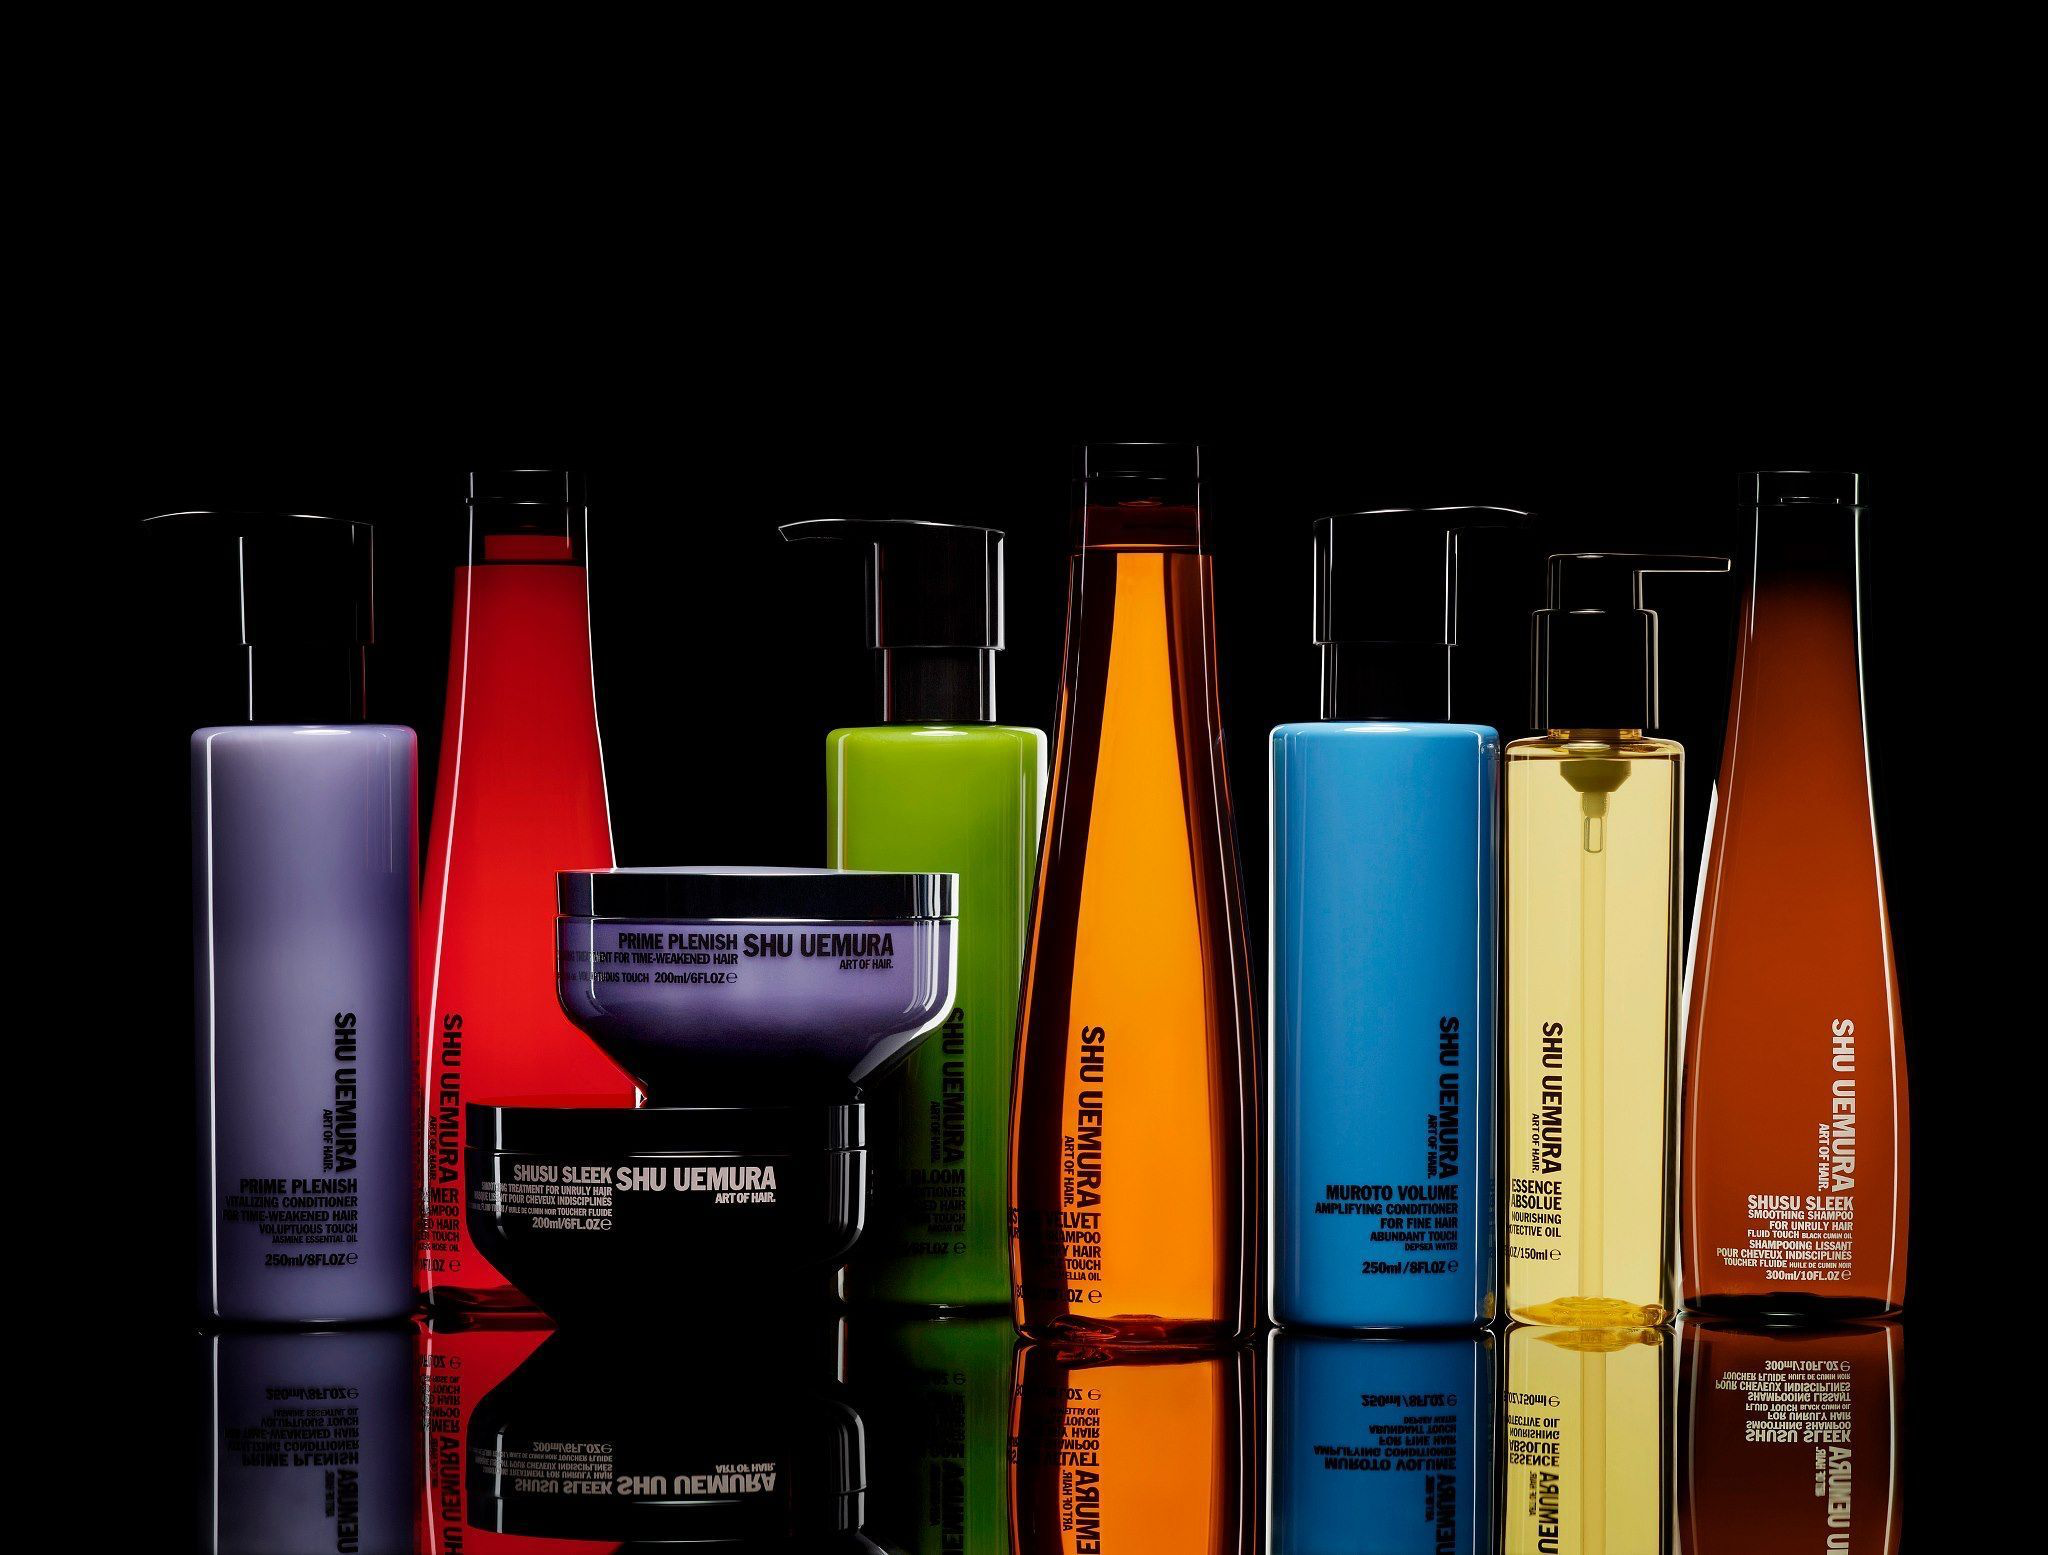 Shu Uemura  - Shu UemuraArt ofHairMr.Shu Uemura. With his same unwavering passion for creating innovations in skincare and makeup, Mr.Uemuraexpanded his beauty expertise to launchShu UemuraArt ofHairin 2007. His goal was to highlight the artistry of hairdressing as an extension of a woman's beauty.